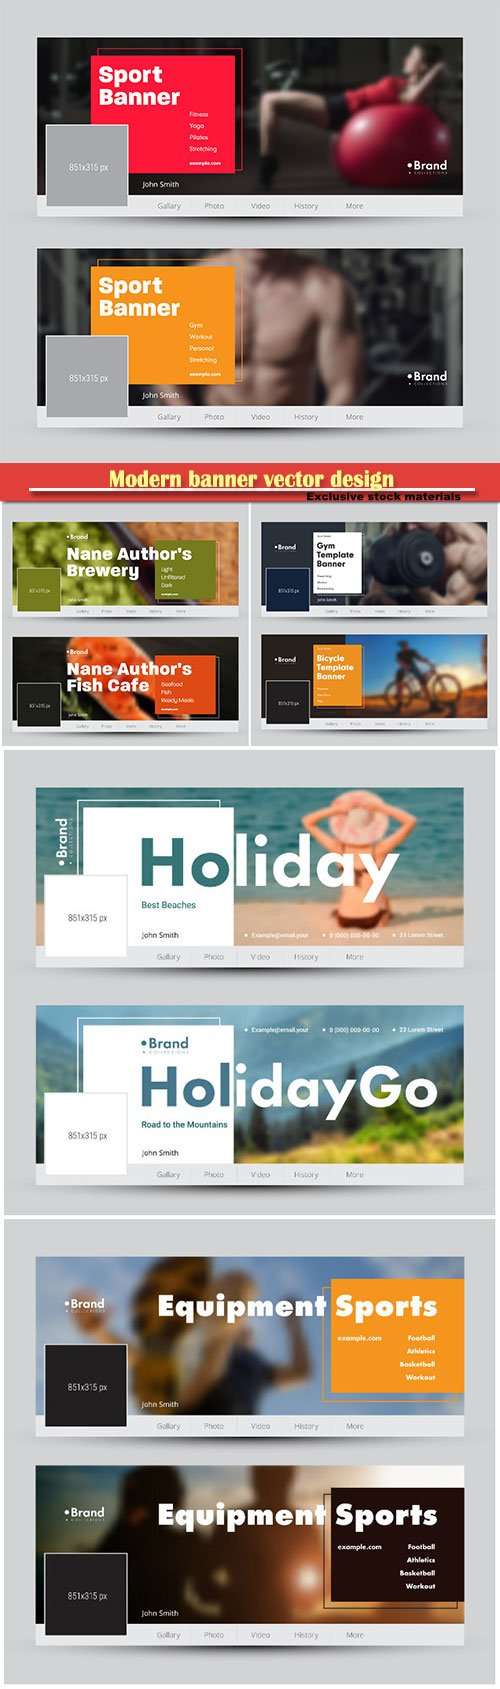 Modern banner vector design with space for photo